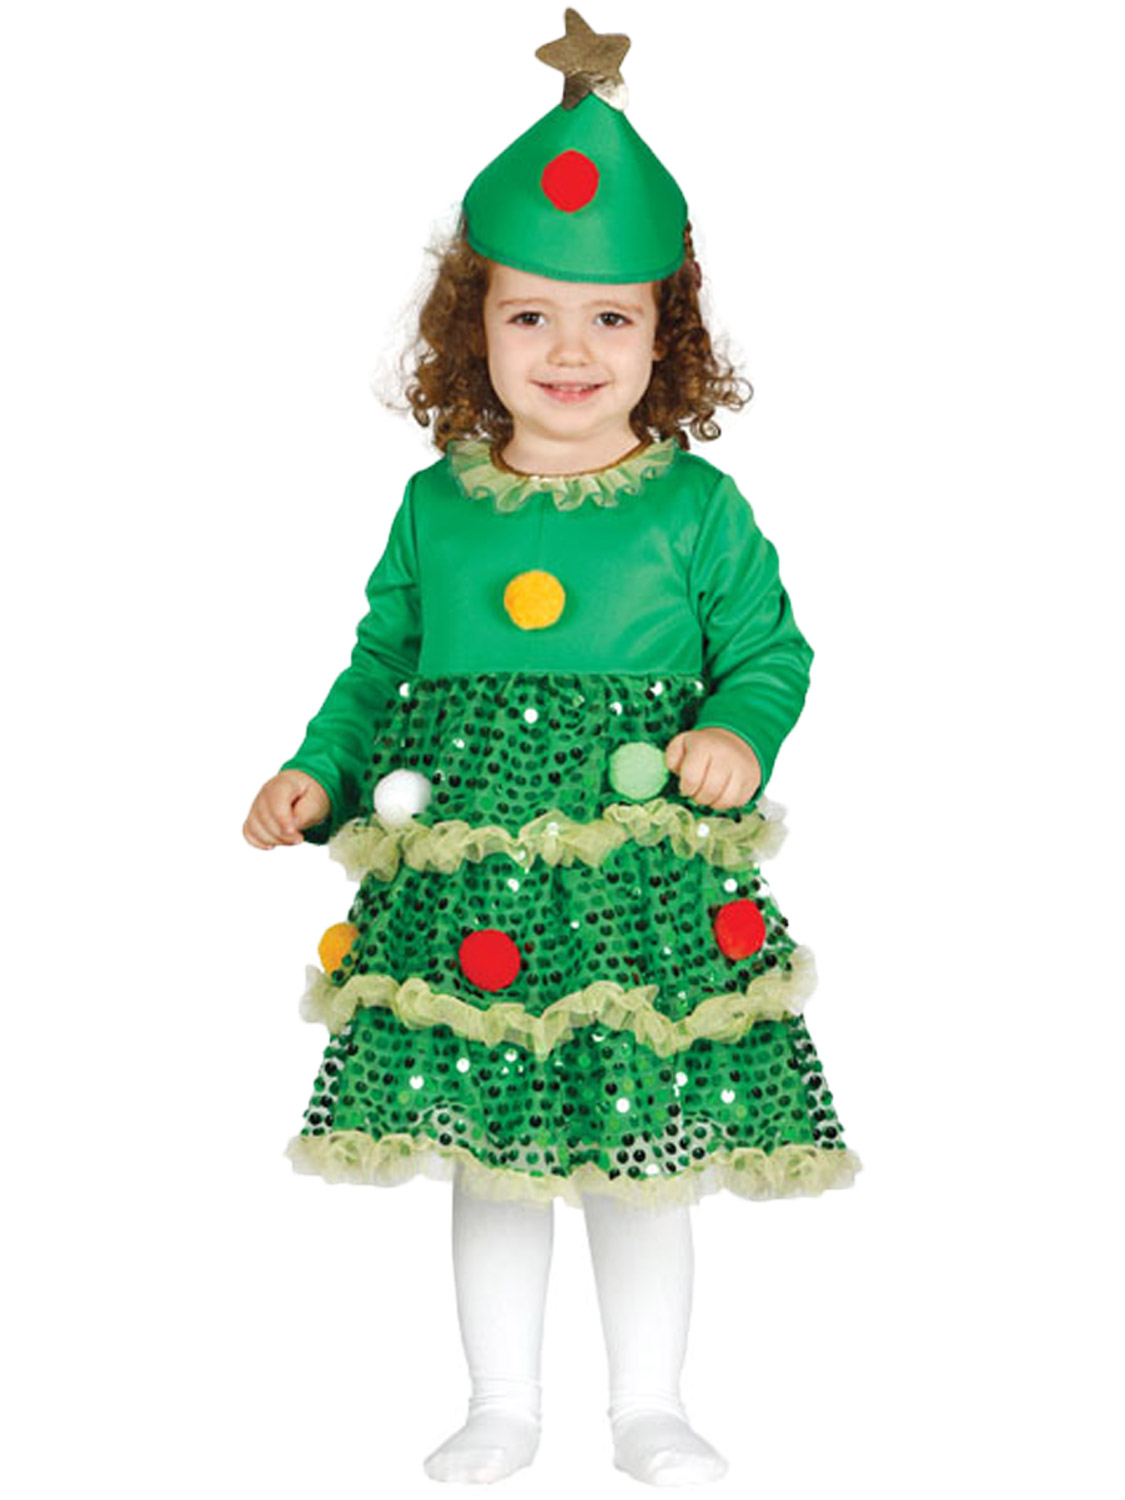 Christmas tree dress up images - Transform Your Child Into A Christmas Tree With This Girls Beautiful Xmas Costume Ideal If They Are Dressing Up For A Christmas Party Or The School